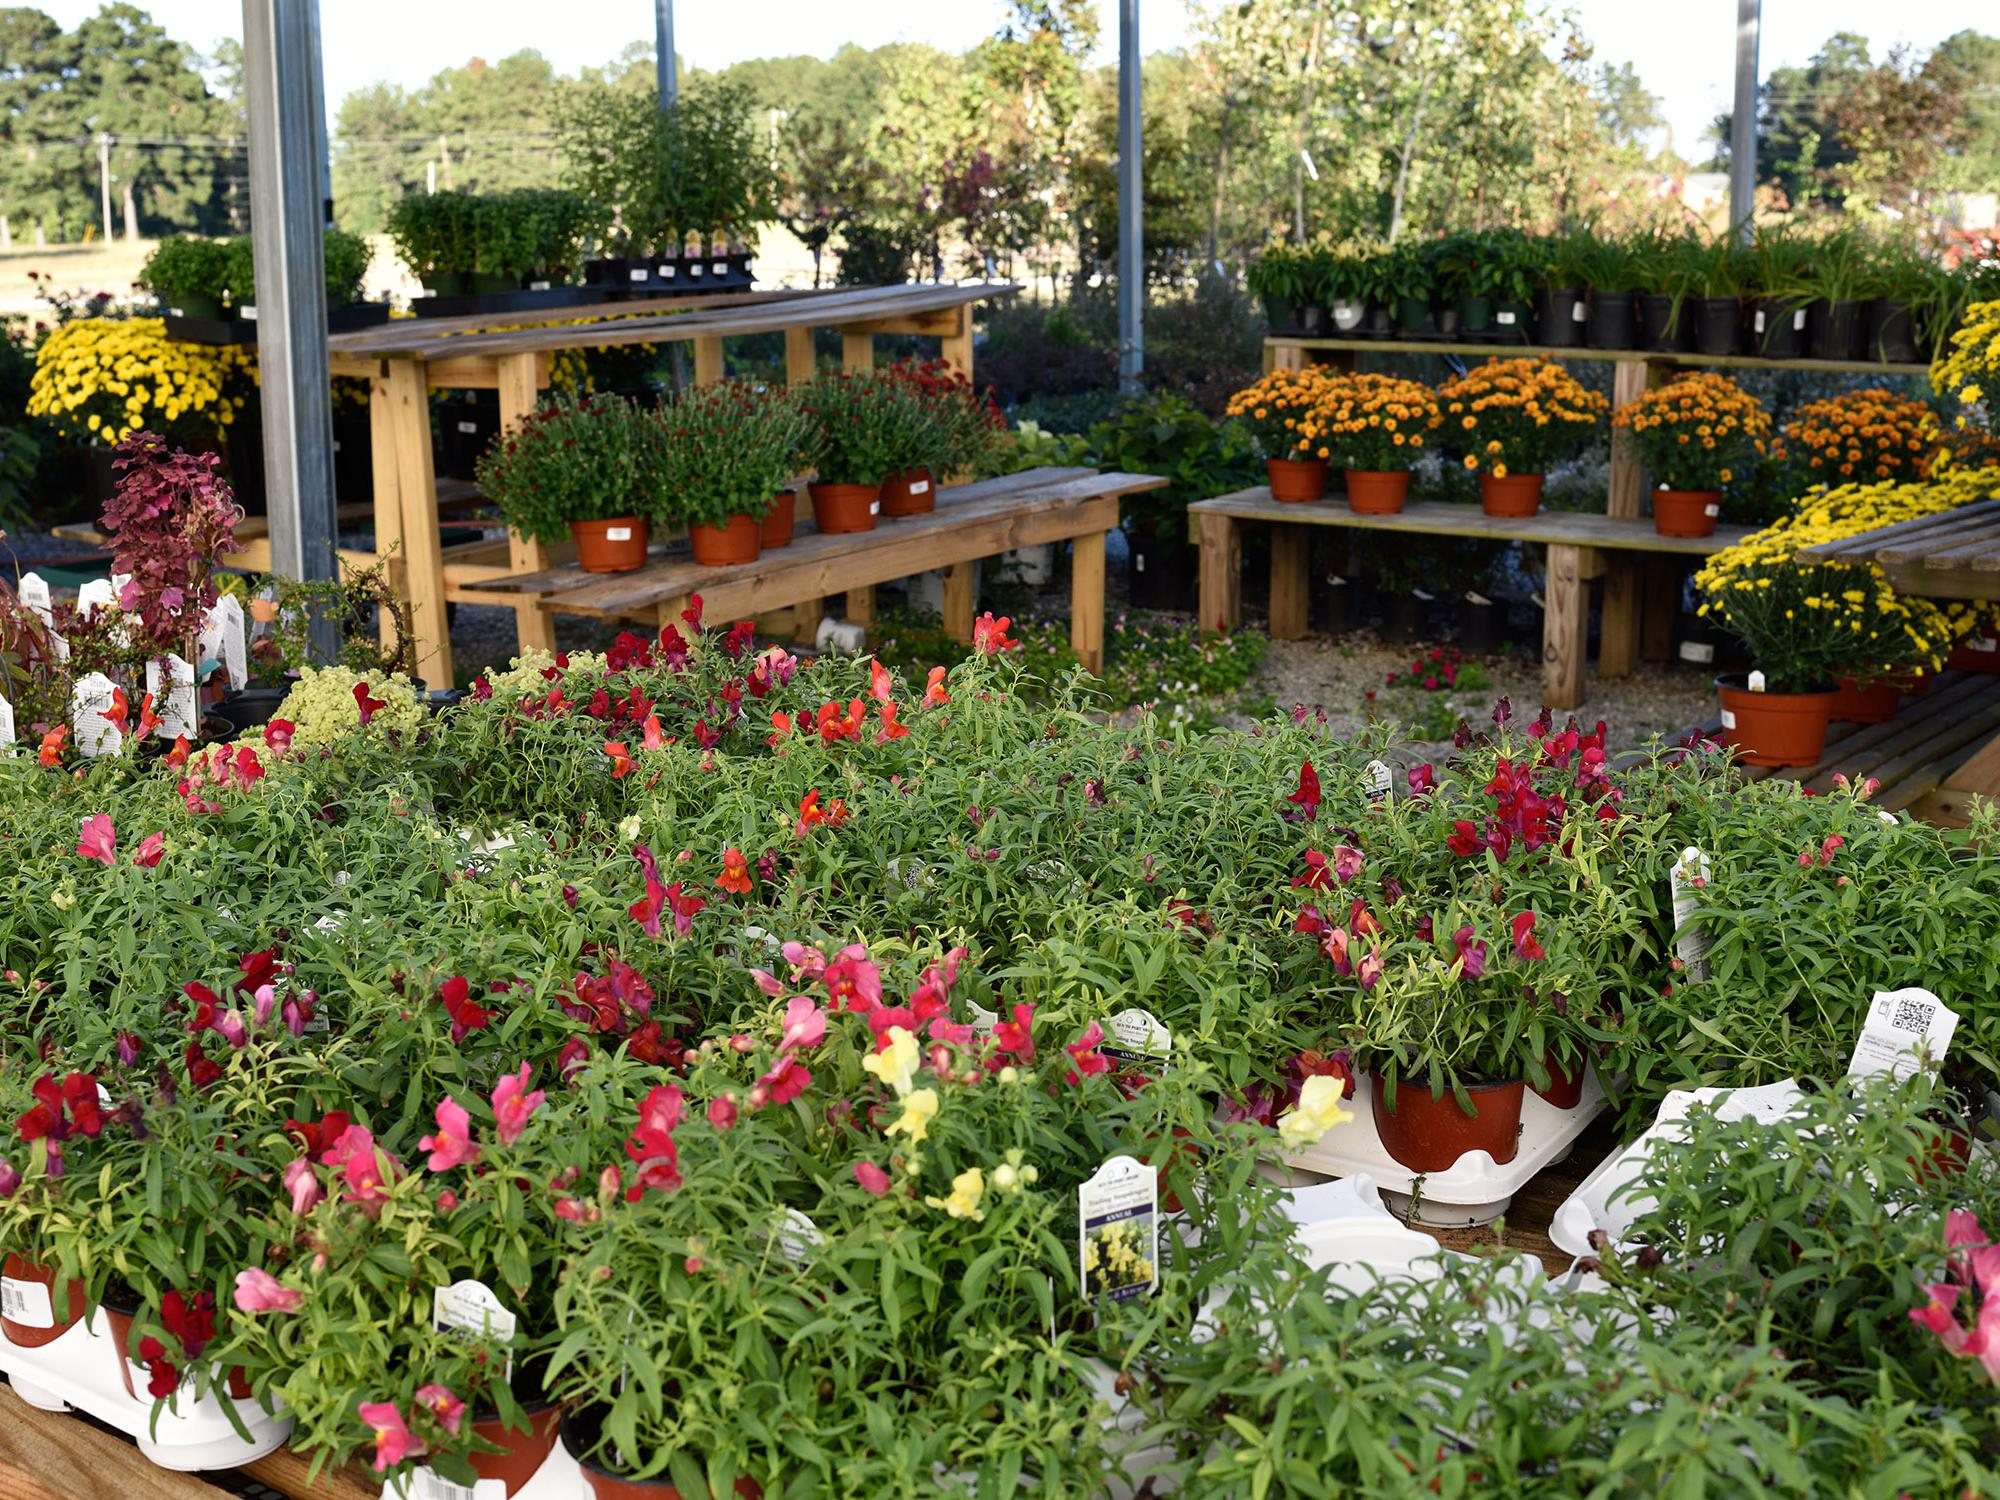 Shrubs, trees, bedding plants and seasonal mums are displayed at Evergreen Garden Center in Louisville on Sept. 24, 2014. Gardeners bought more landscaping products in 2014 than in recent years. (Photo by MSU Ag Communications/Kevin Hudson)